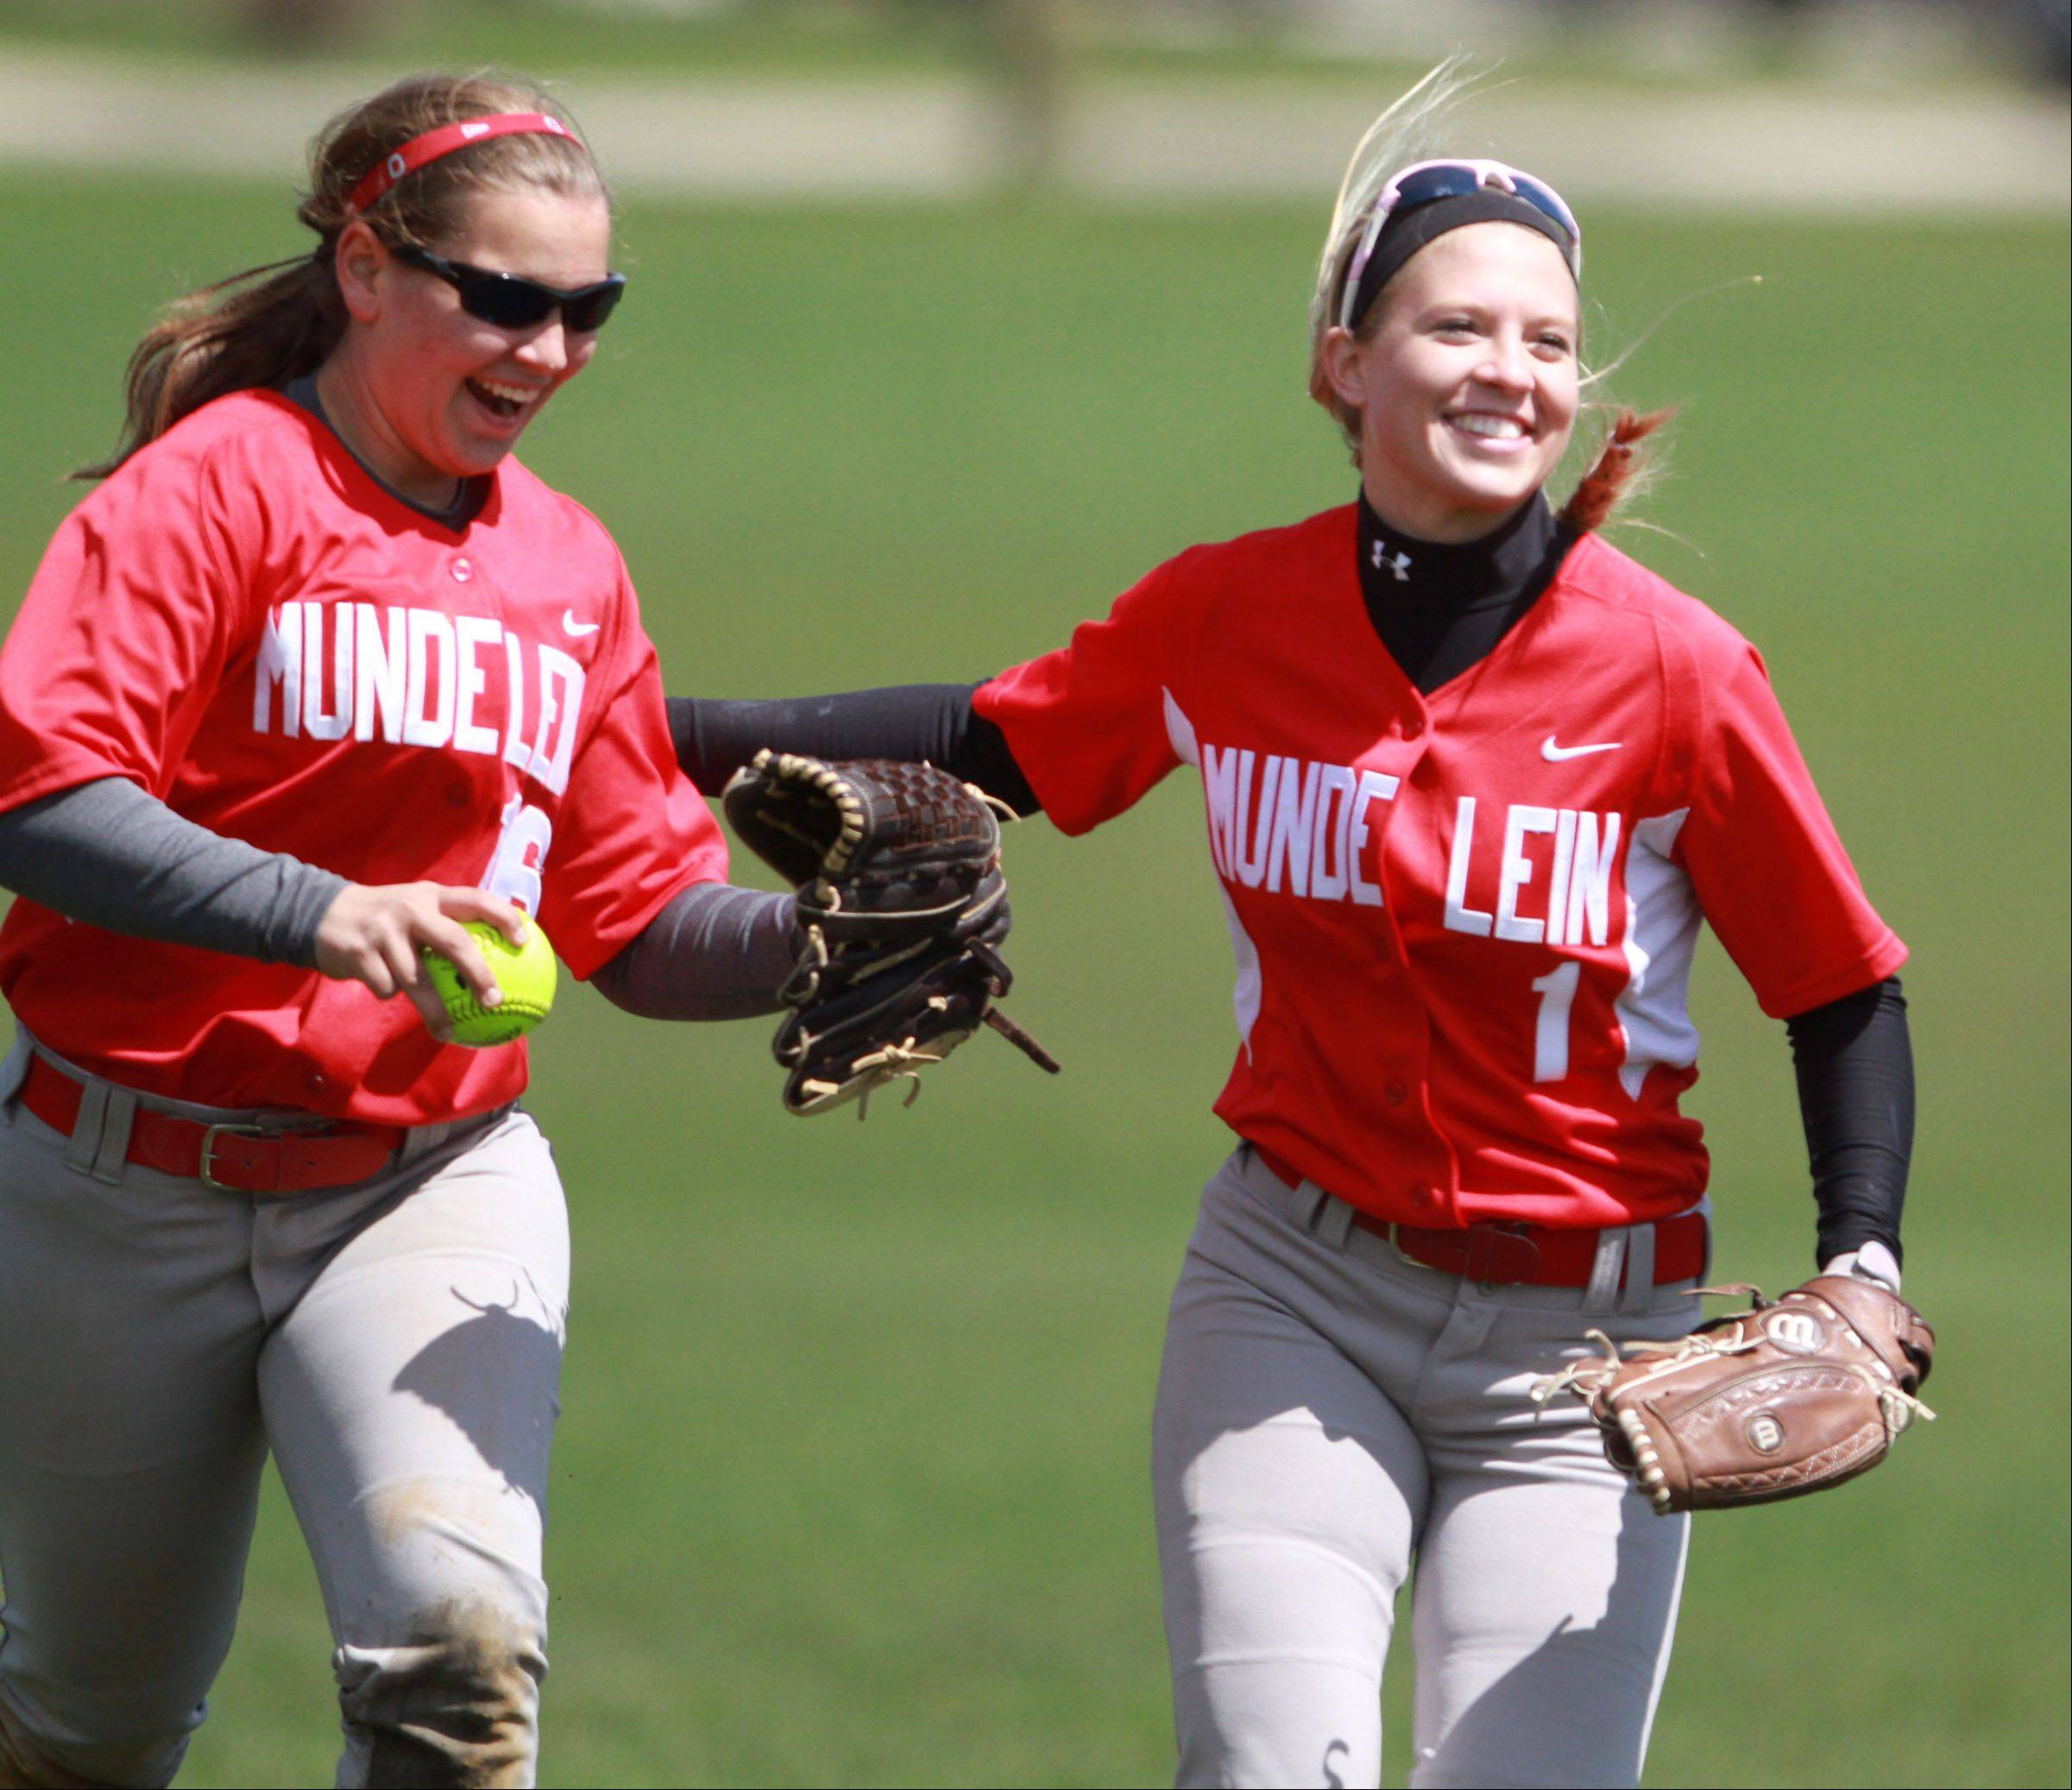 Mundelein's Hannah Bulgart, left, gets a hand from teammate Chloe Peterson after Bulgart make a difficult catch to end the inning against Johnsburg at Mundelein on Saturday.